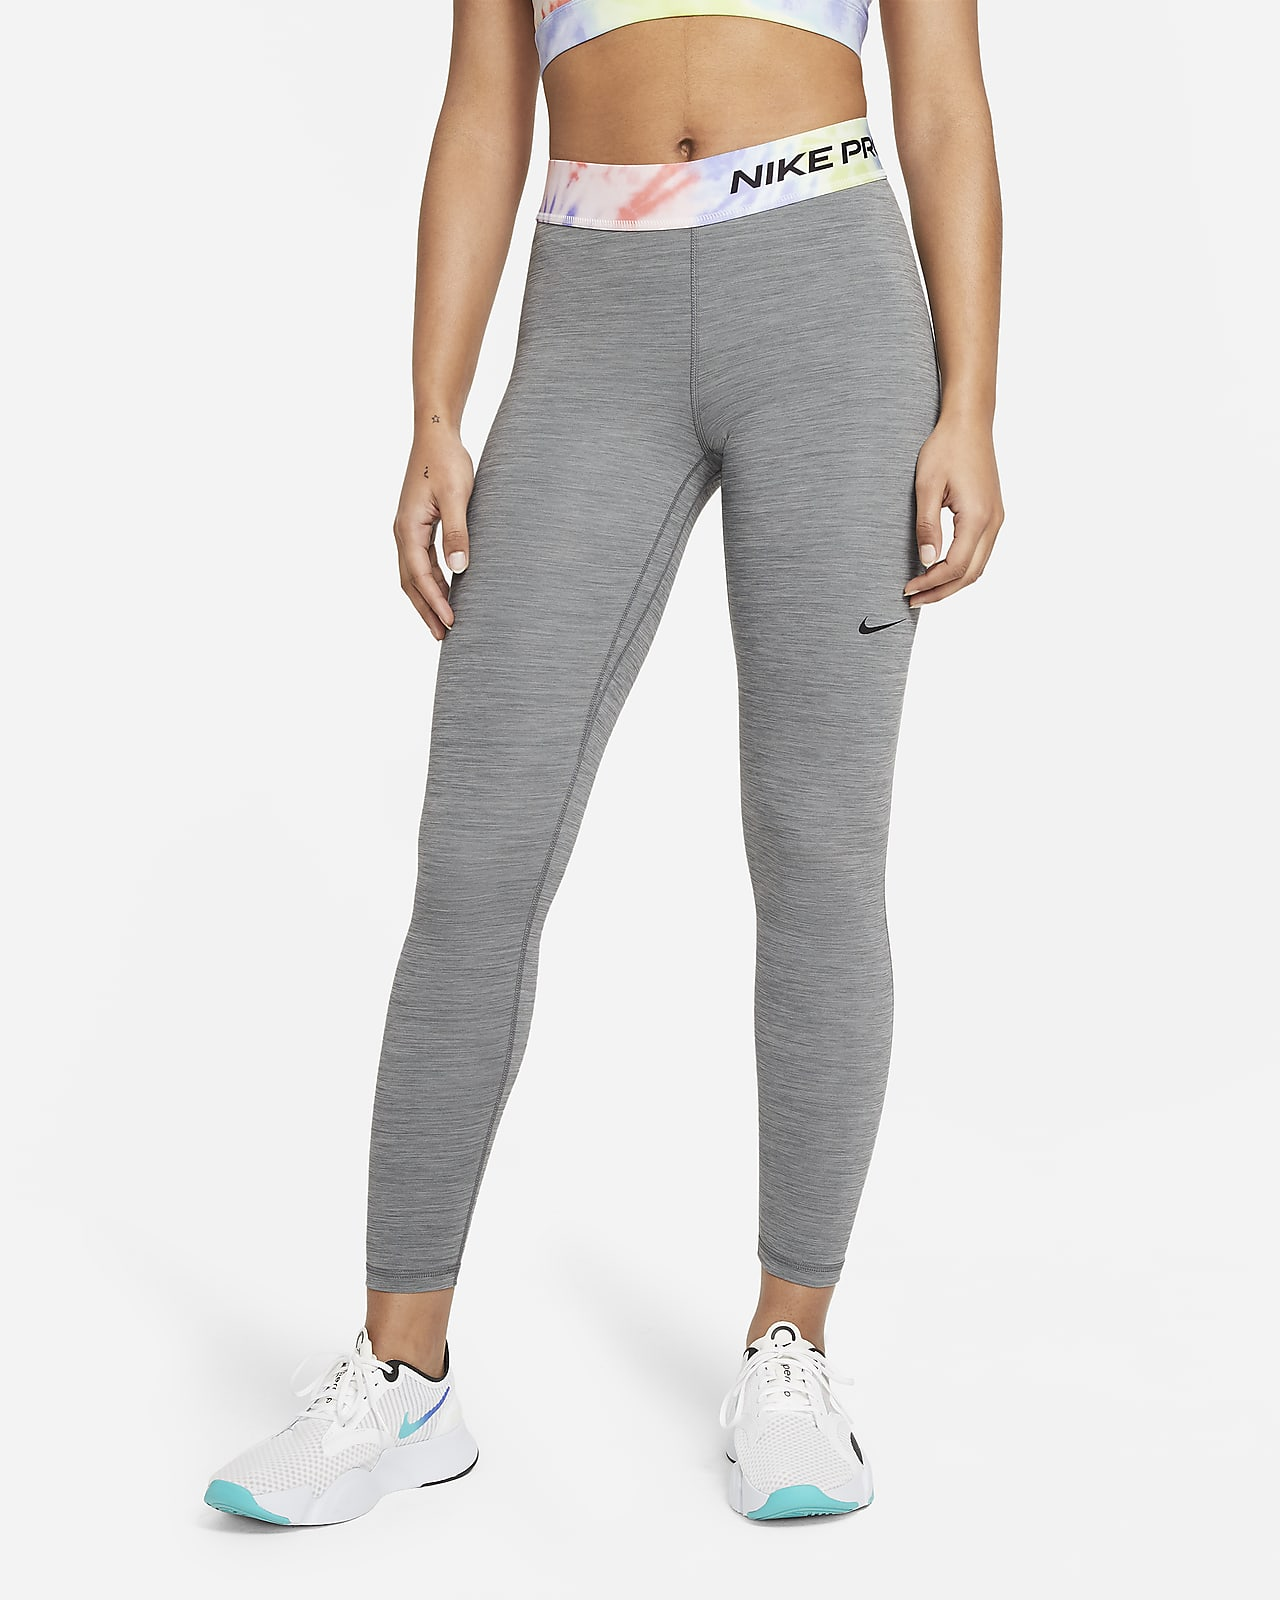 Nike Pro Women's 7/8 Tie-Dye Leggings